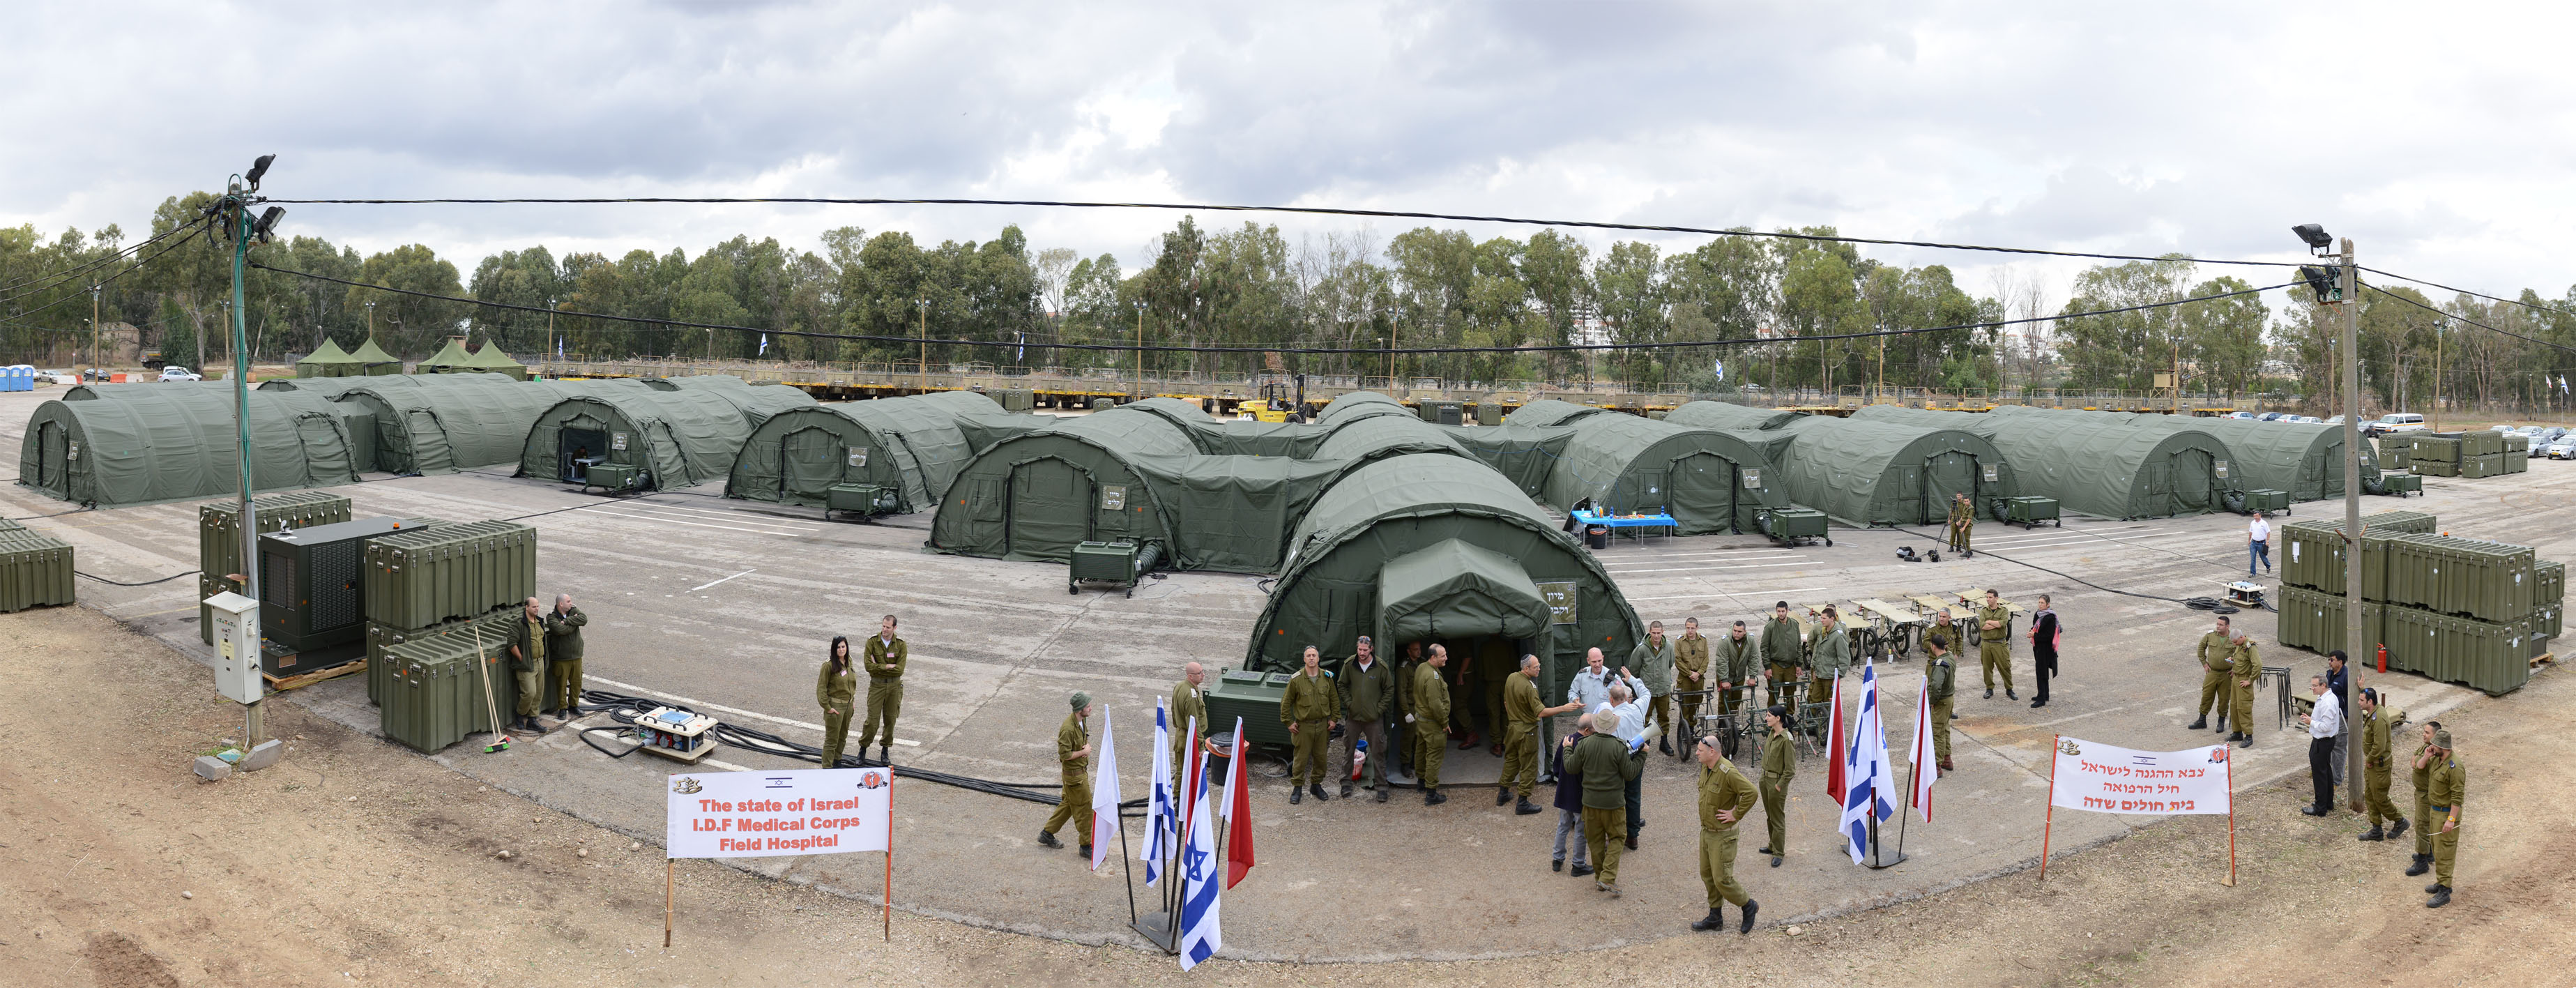 Israel Defense Forces Field Hospital Ranked  Number One in the World  by WHO & Israel Defense Forces Field Hospital Ranked